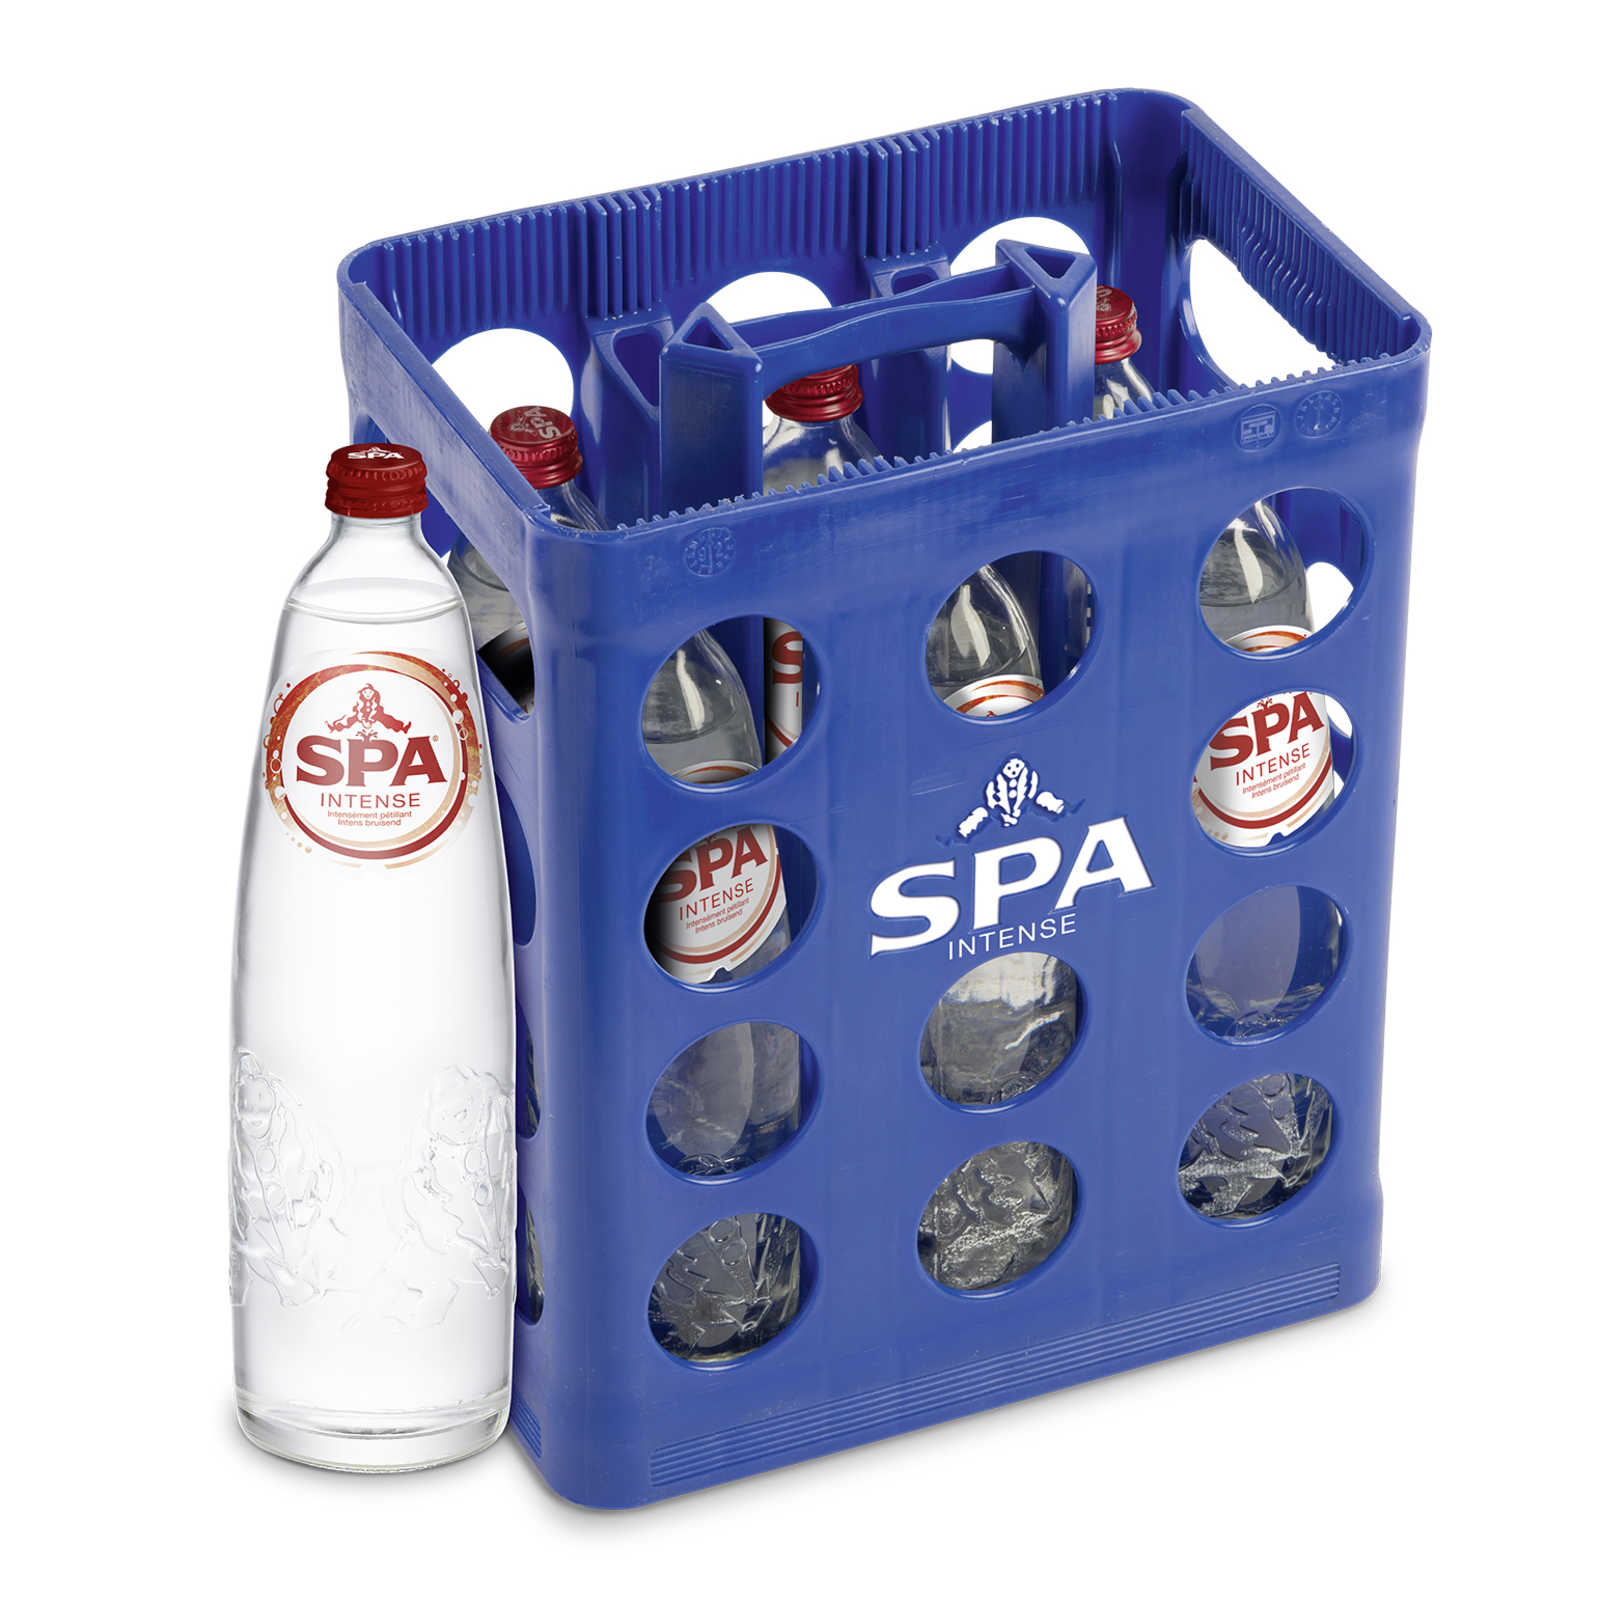 casier spa intense 28x25cl